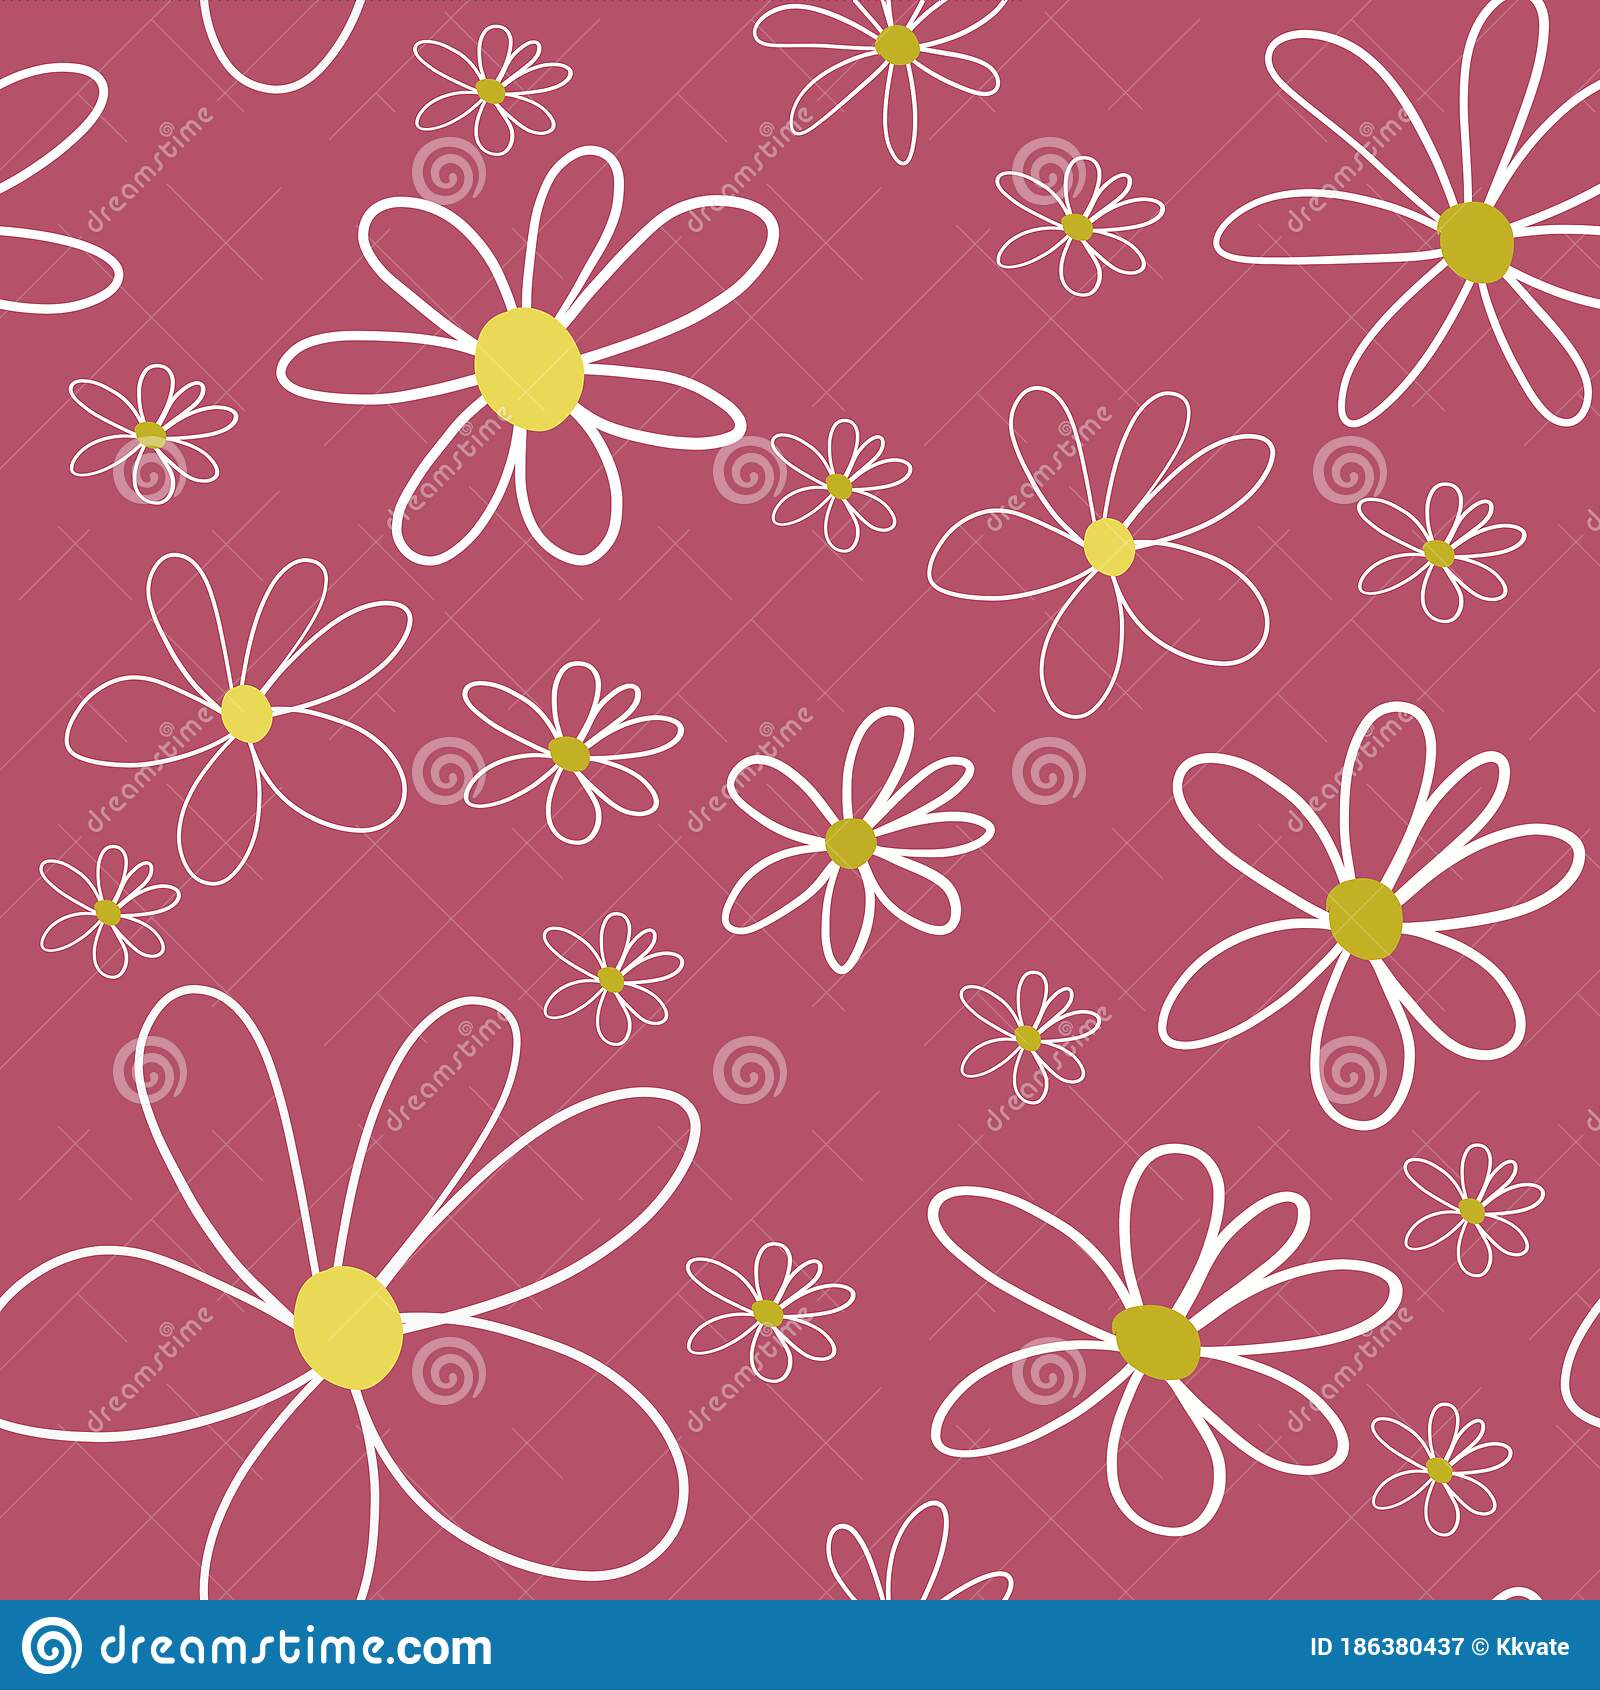 Kids Drawing Daisies On Red Background Seamless Pattern Linen Print Packaging Wallpaper Textile Fabric Design Stock Illustration Illustration Of Floral Print 186380437